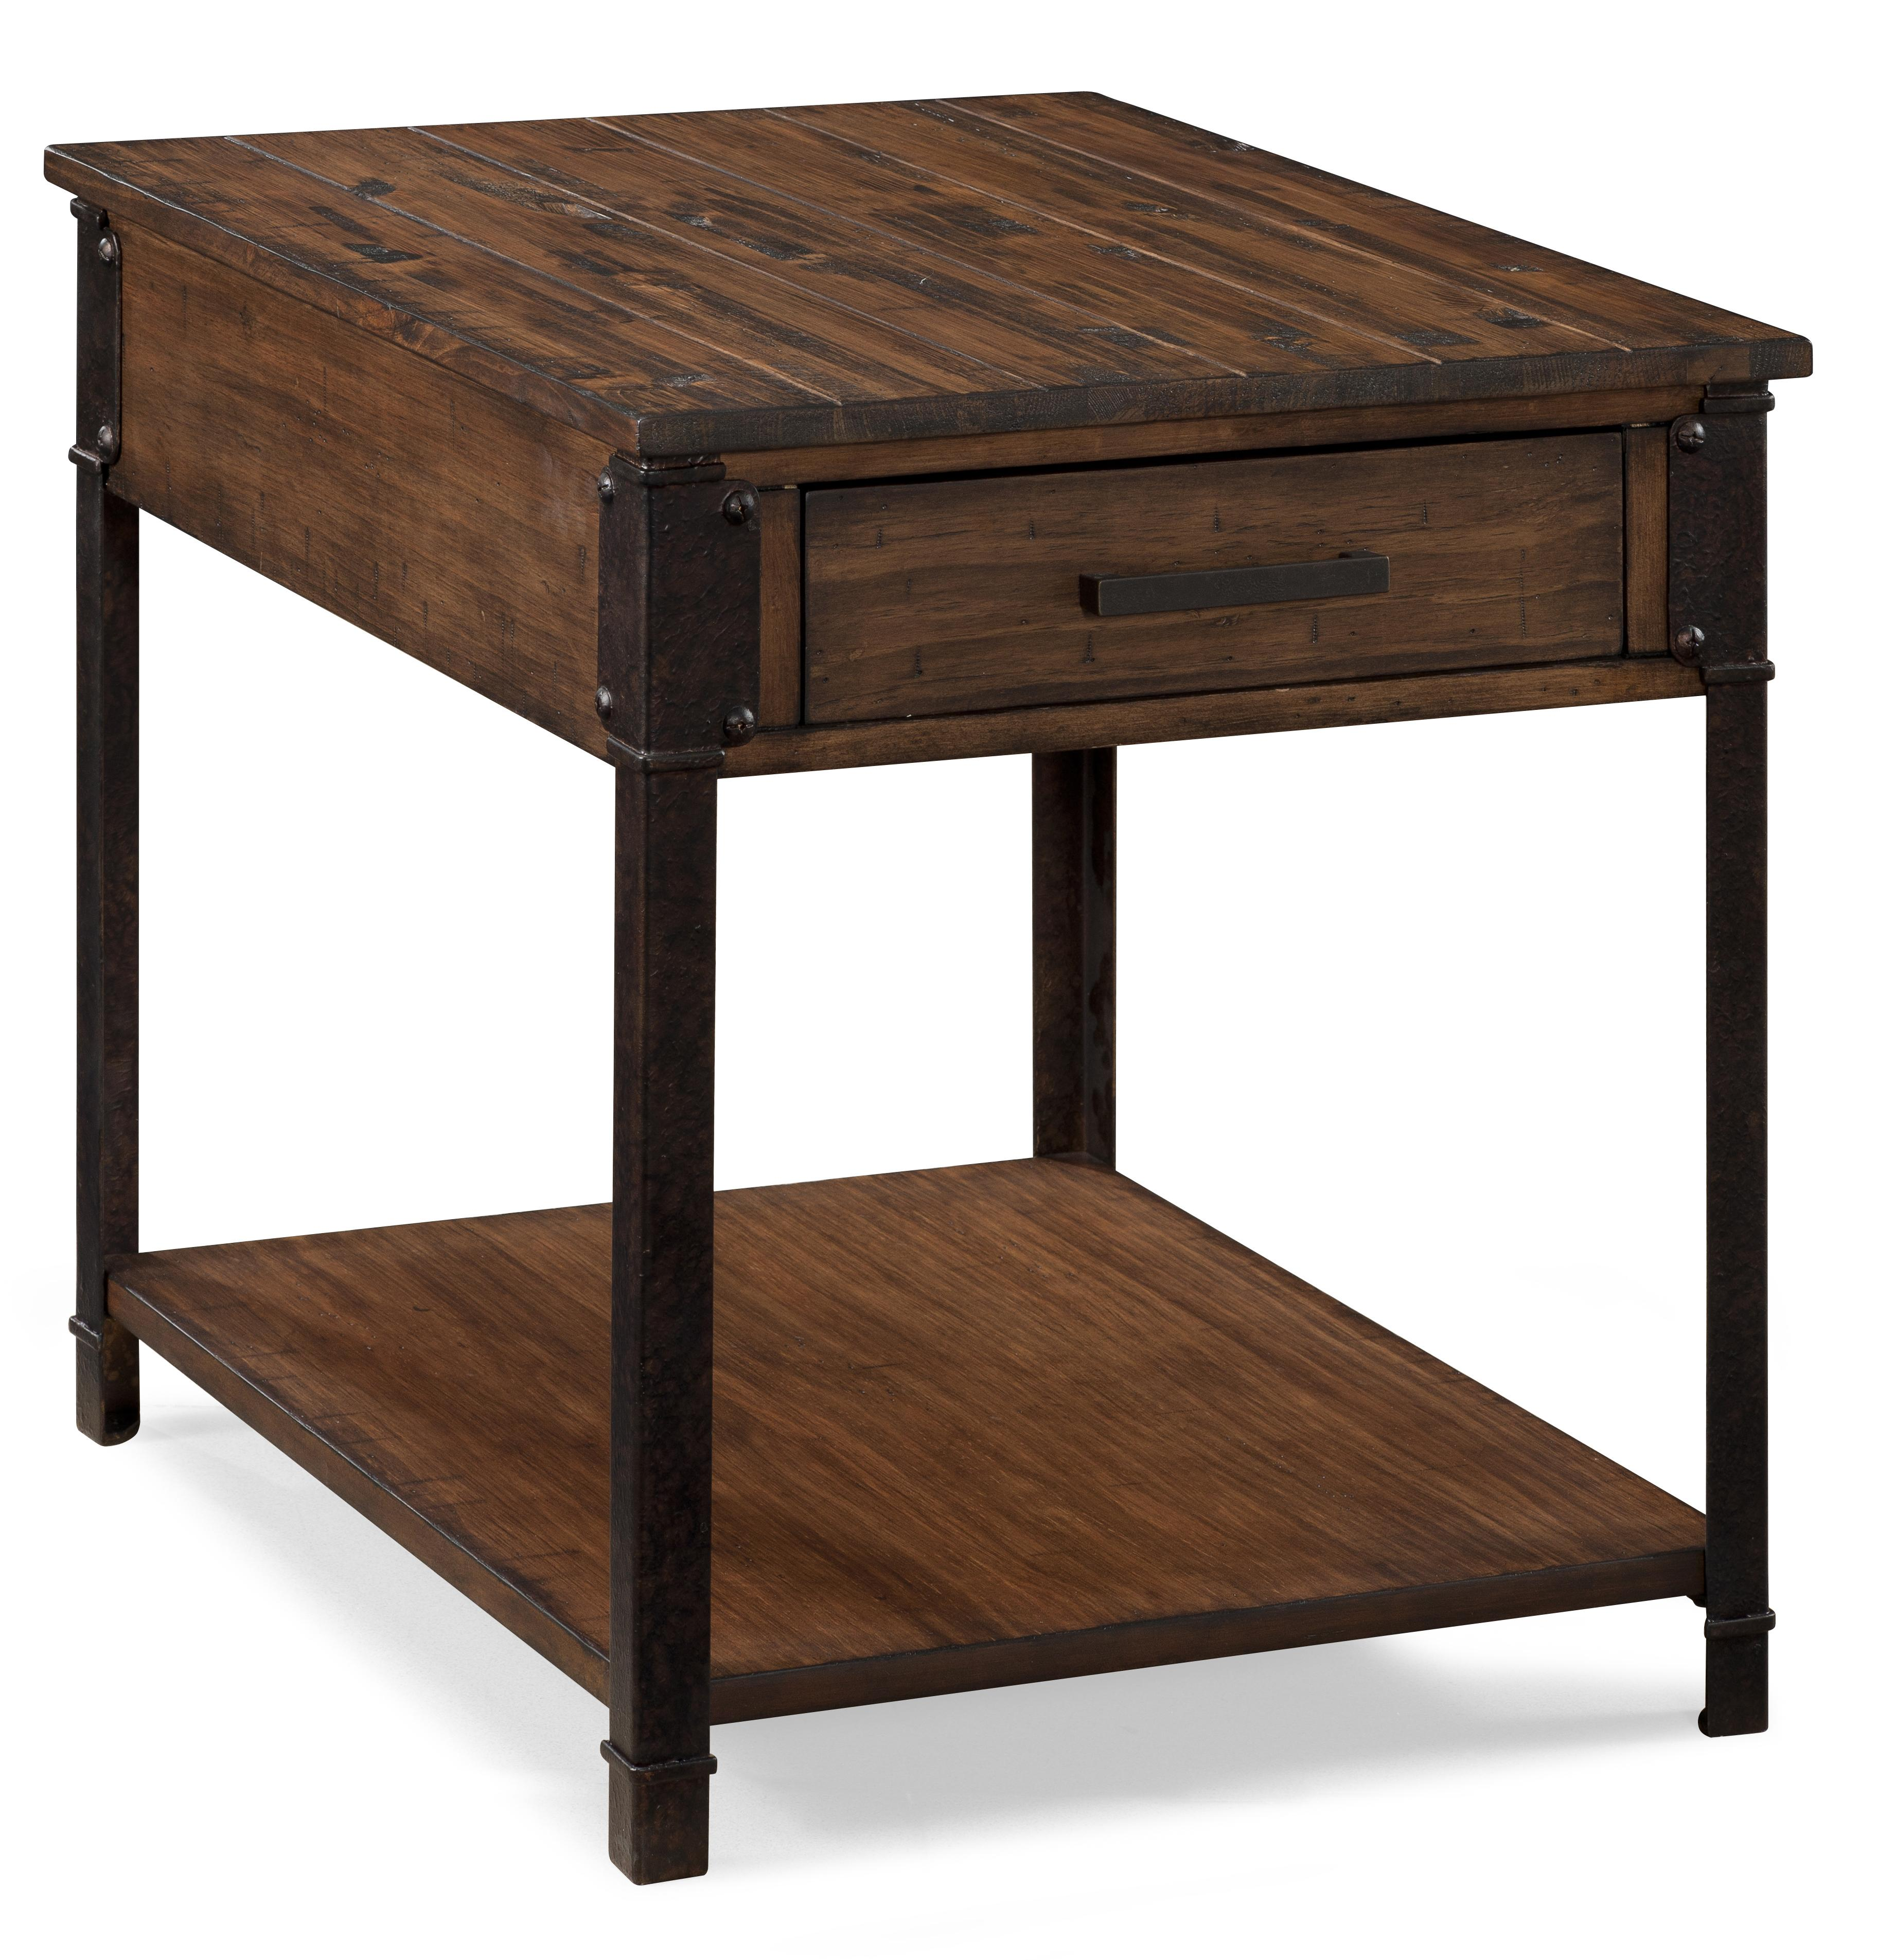 magnussen home larkin industrial rectangular end table with   - magnussen home larkin rectangular end table  item number t